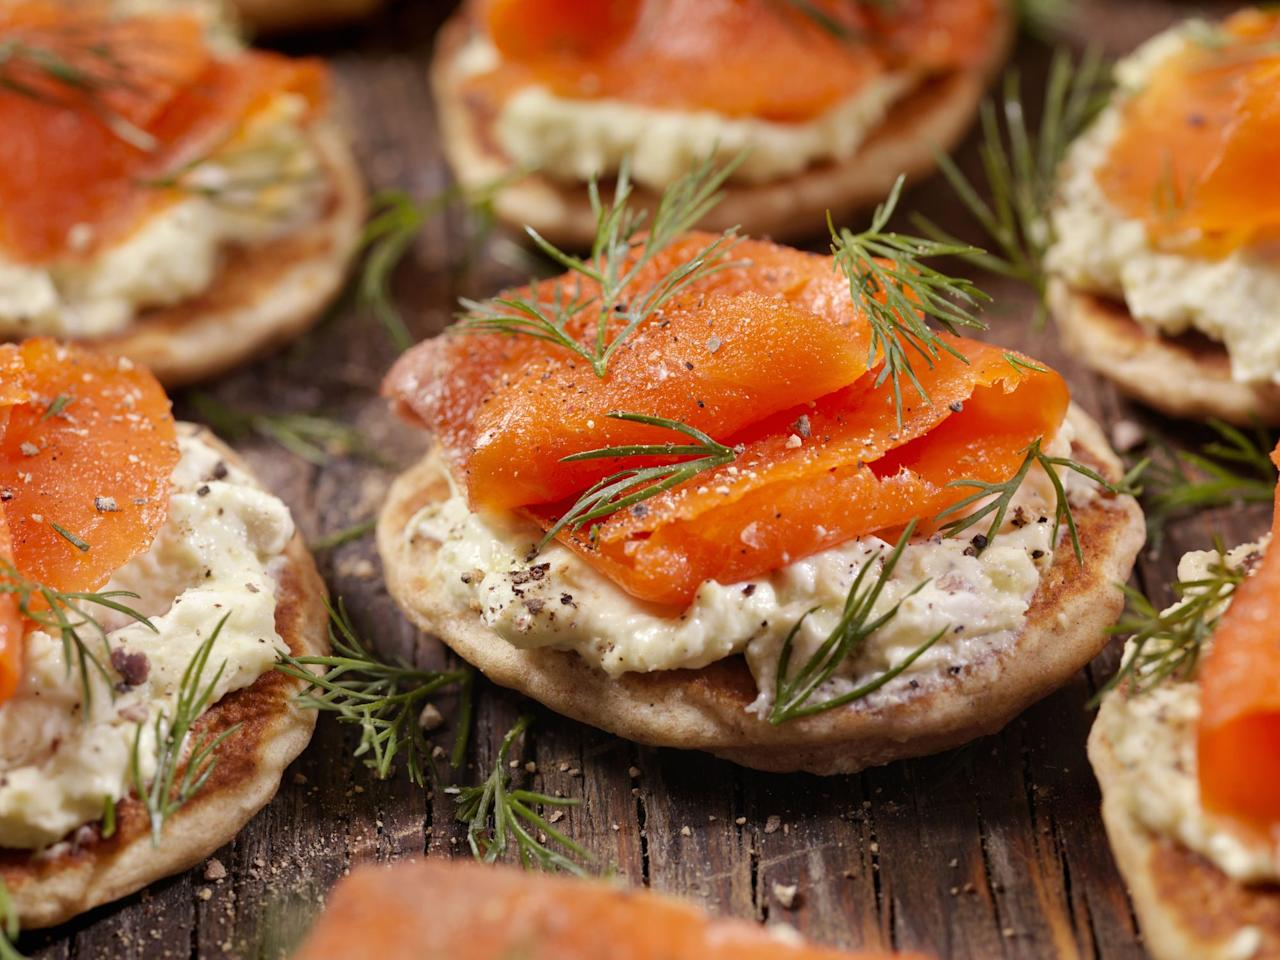 """<p>Smoked <a href=""""https://www.goodhousekeeping.com/uk/food/food-reviews/g29126933/flavoured-smoked-salmon/"""" target=""""_blank"""">salmon</a> shines throughout the <a href=""""https://www.goodhousekeeping.com/uk/christmas/"""" target=""""_blank"""">Christmas</a> period; a great light starter before the <a href=""""https://www.goodhousekeeping.com/uk/food/food-reviews/g23867629/the-best-roast-turkey-for-your-christmas-dinner/"""">turkey</a>, a canapé topping for festive nibbles, or an indulgent addition to your Christmas breakfast.</p><p>Sourced from all over the world, the best smoked salmon is firstly dried and cured before being seasoned or glazed, often with dill, mustard, lemon or garlic (to name a few). The fish is then hot or cold smoked over various woods – typically beech and oak but sometimes maple or birch too – to further enhance the flavour.</p><p>This year, supermarkets and independent suppliers have a great selection on offer. So whether you're doing the Christmas food shop online or heading to your local supermarket, here are the best smoked salmons we think you should buy...</p><h2 class=""""body-h2""""><strong>GHI tip</strong></h2><p><strong></strong>Store your smoked salmon on the bottom shelf of the fridge, where it's the coldest. Unopened, it should remain fresh for weeks but once opened, place in a zip-lock bag or keep it in the original packaging and seal with clingfilm.</p><h2 class=""""body-h2""""><strong>How we test</strong></h2><p><strong></strong>Our consumer panel assessed the appearance, aroma, flavour and texture of each smoked salmon. We were looking for delicately sliced pieces of fish with a healthy colour and appetising marbling throughout. The flavour should offer a delicate smokiness with an even balance of salt, and finish with a slightly sweet, fishy note. Take a look at our winners below.</p><p>Prices subject to change.<strong></strong><br></p><p><a href=""""http://www.goodhousekeeping.co.uk/food/recipes/smoked-salmon-rolls""""></a><strong><strong>   </strong></strong>"""